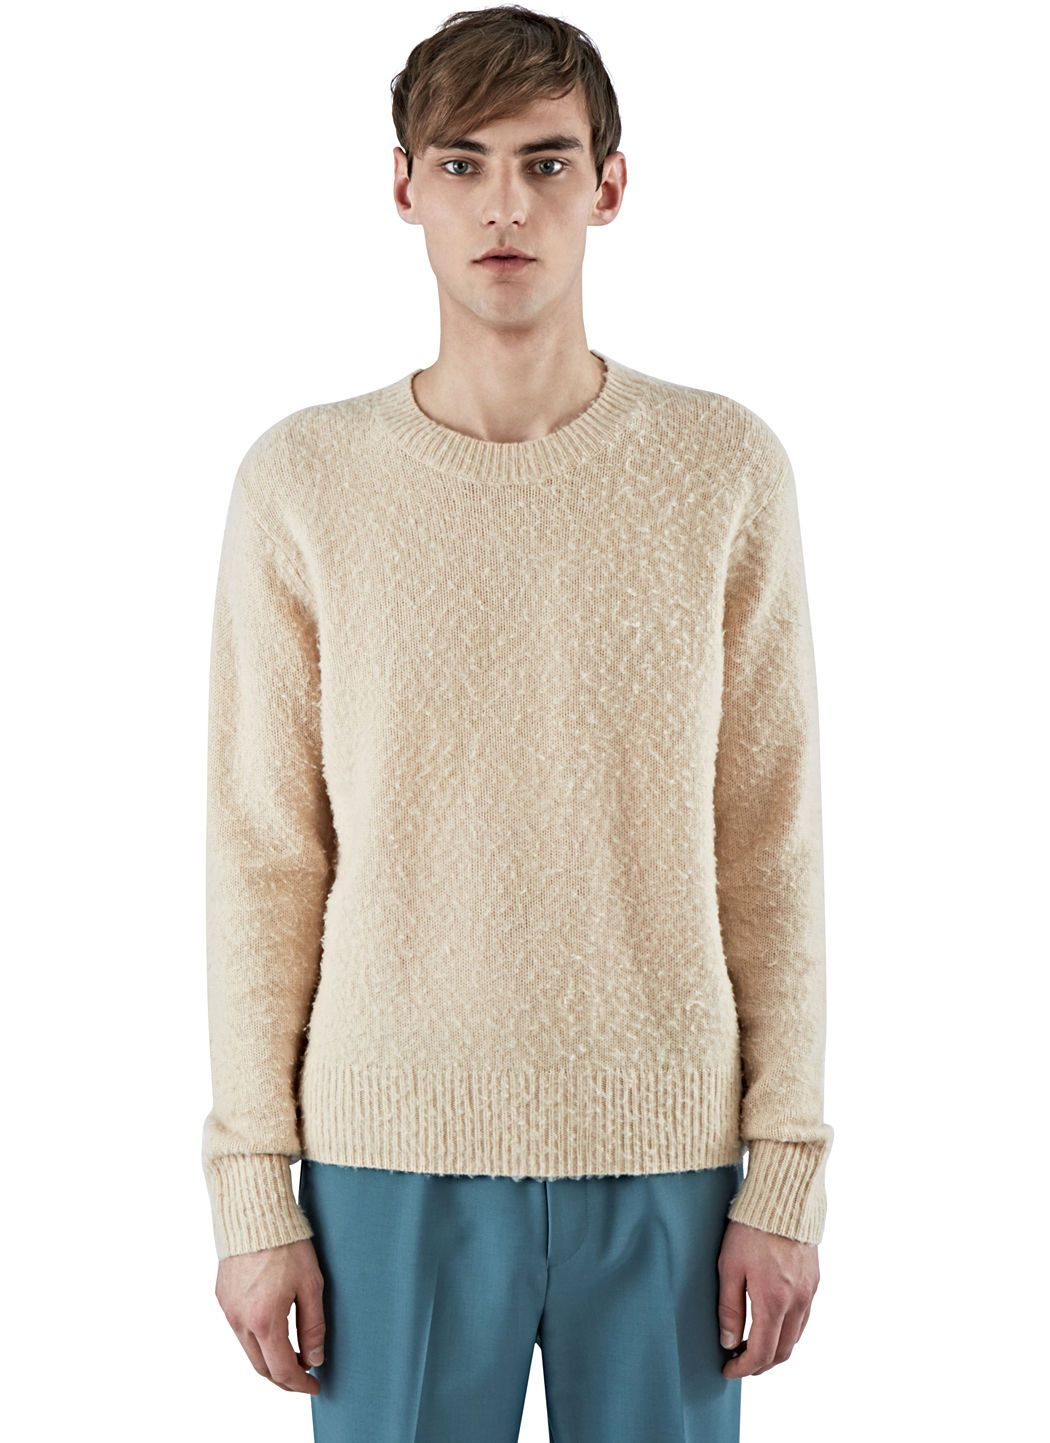 ACNE STUDIOS Men S Peele Cashmere Knit Sweater In Beige.  acnestudios  cloth    514fb1049e1